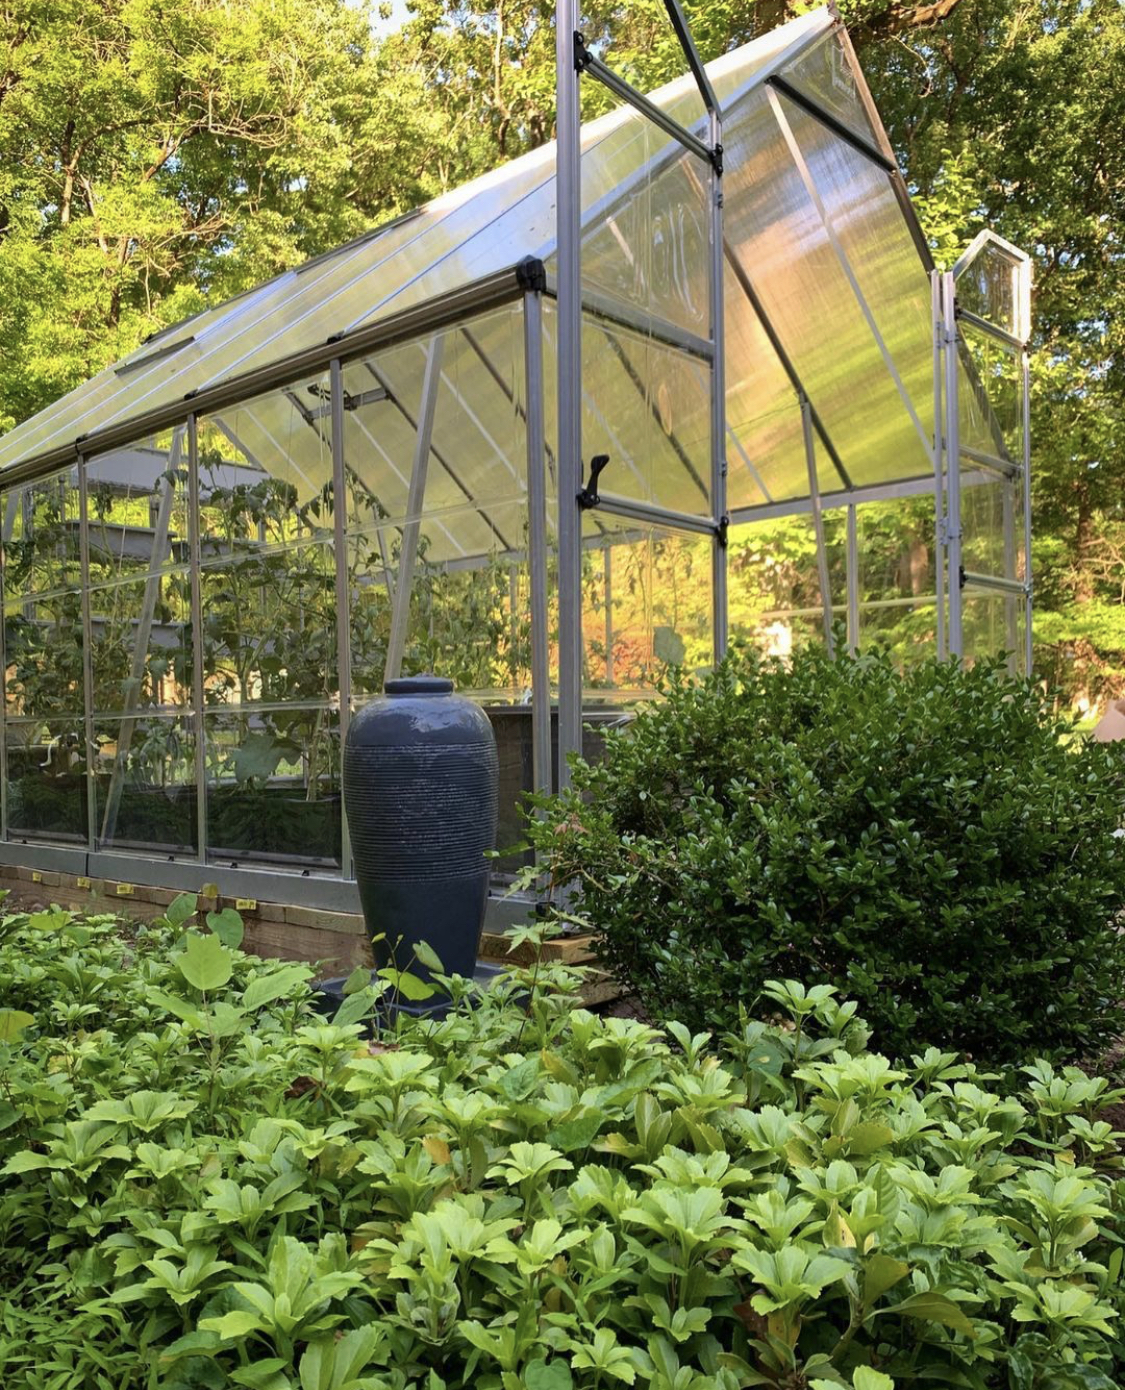 Greenhouse surrounded and filled by growing plants